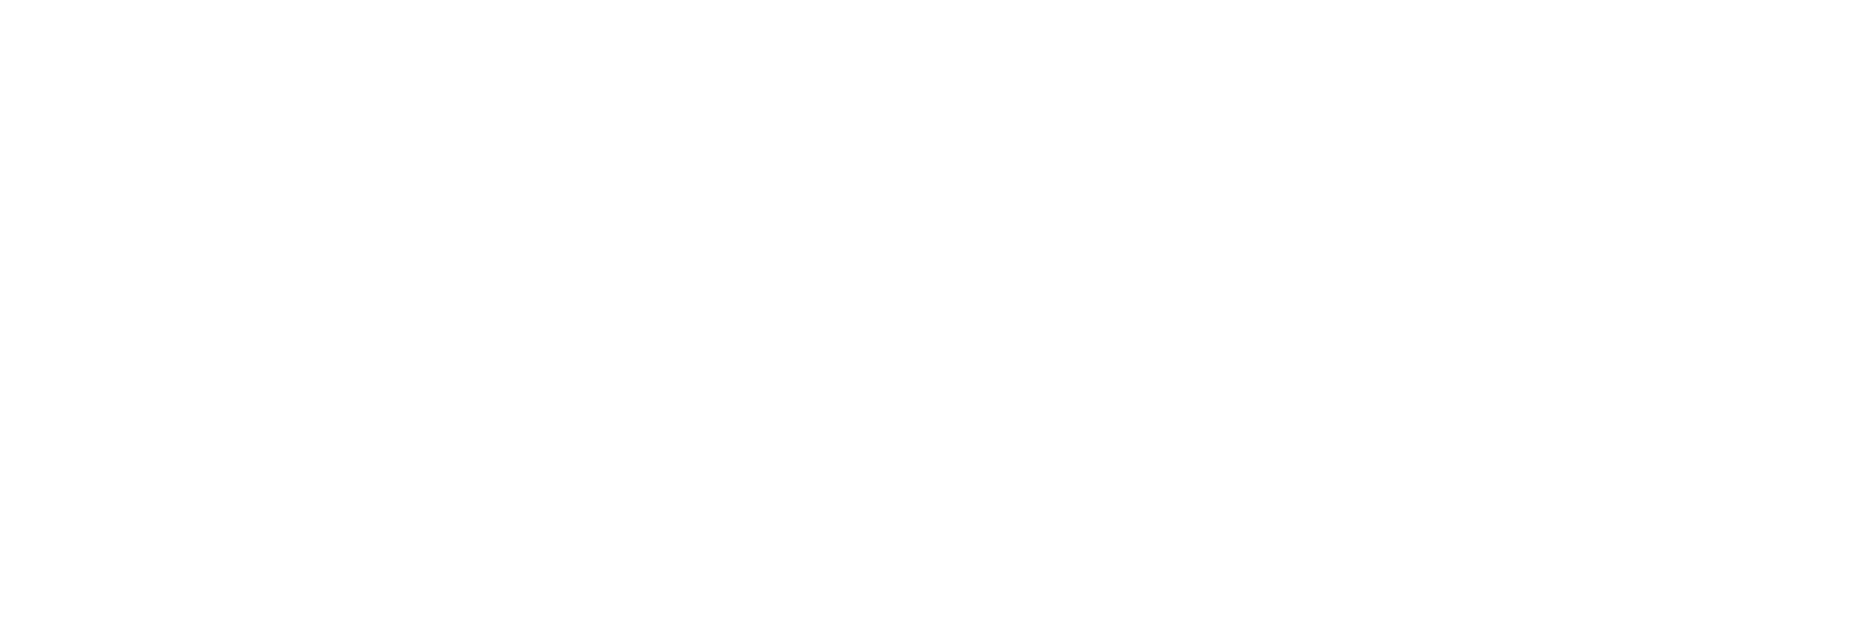 Dynamic wave background using lines